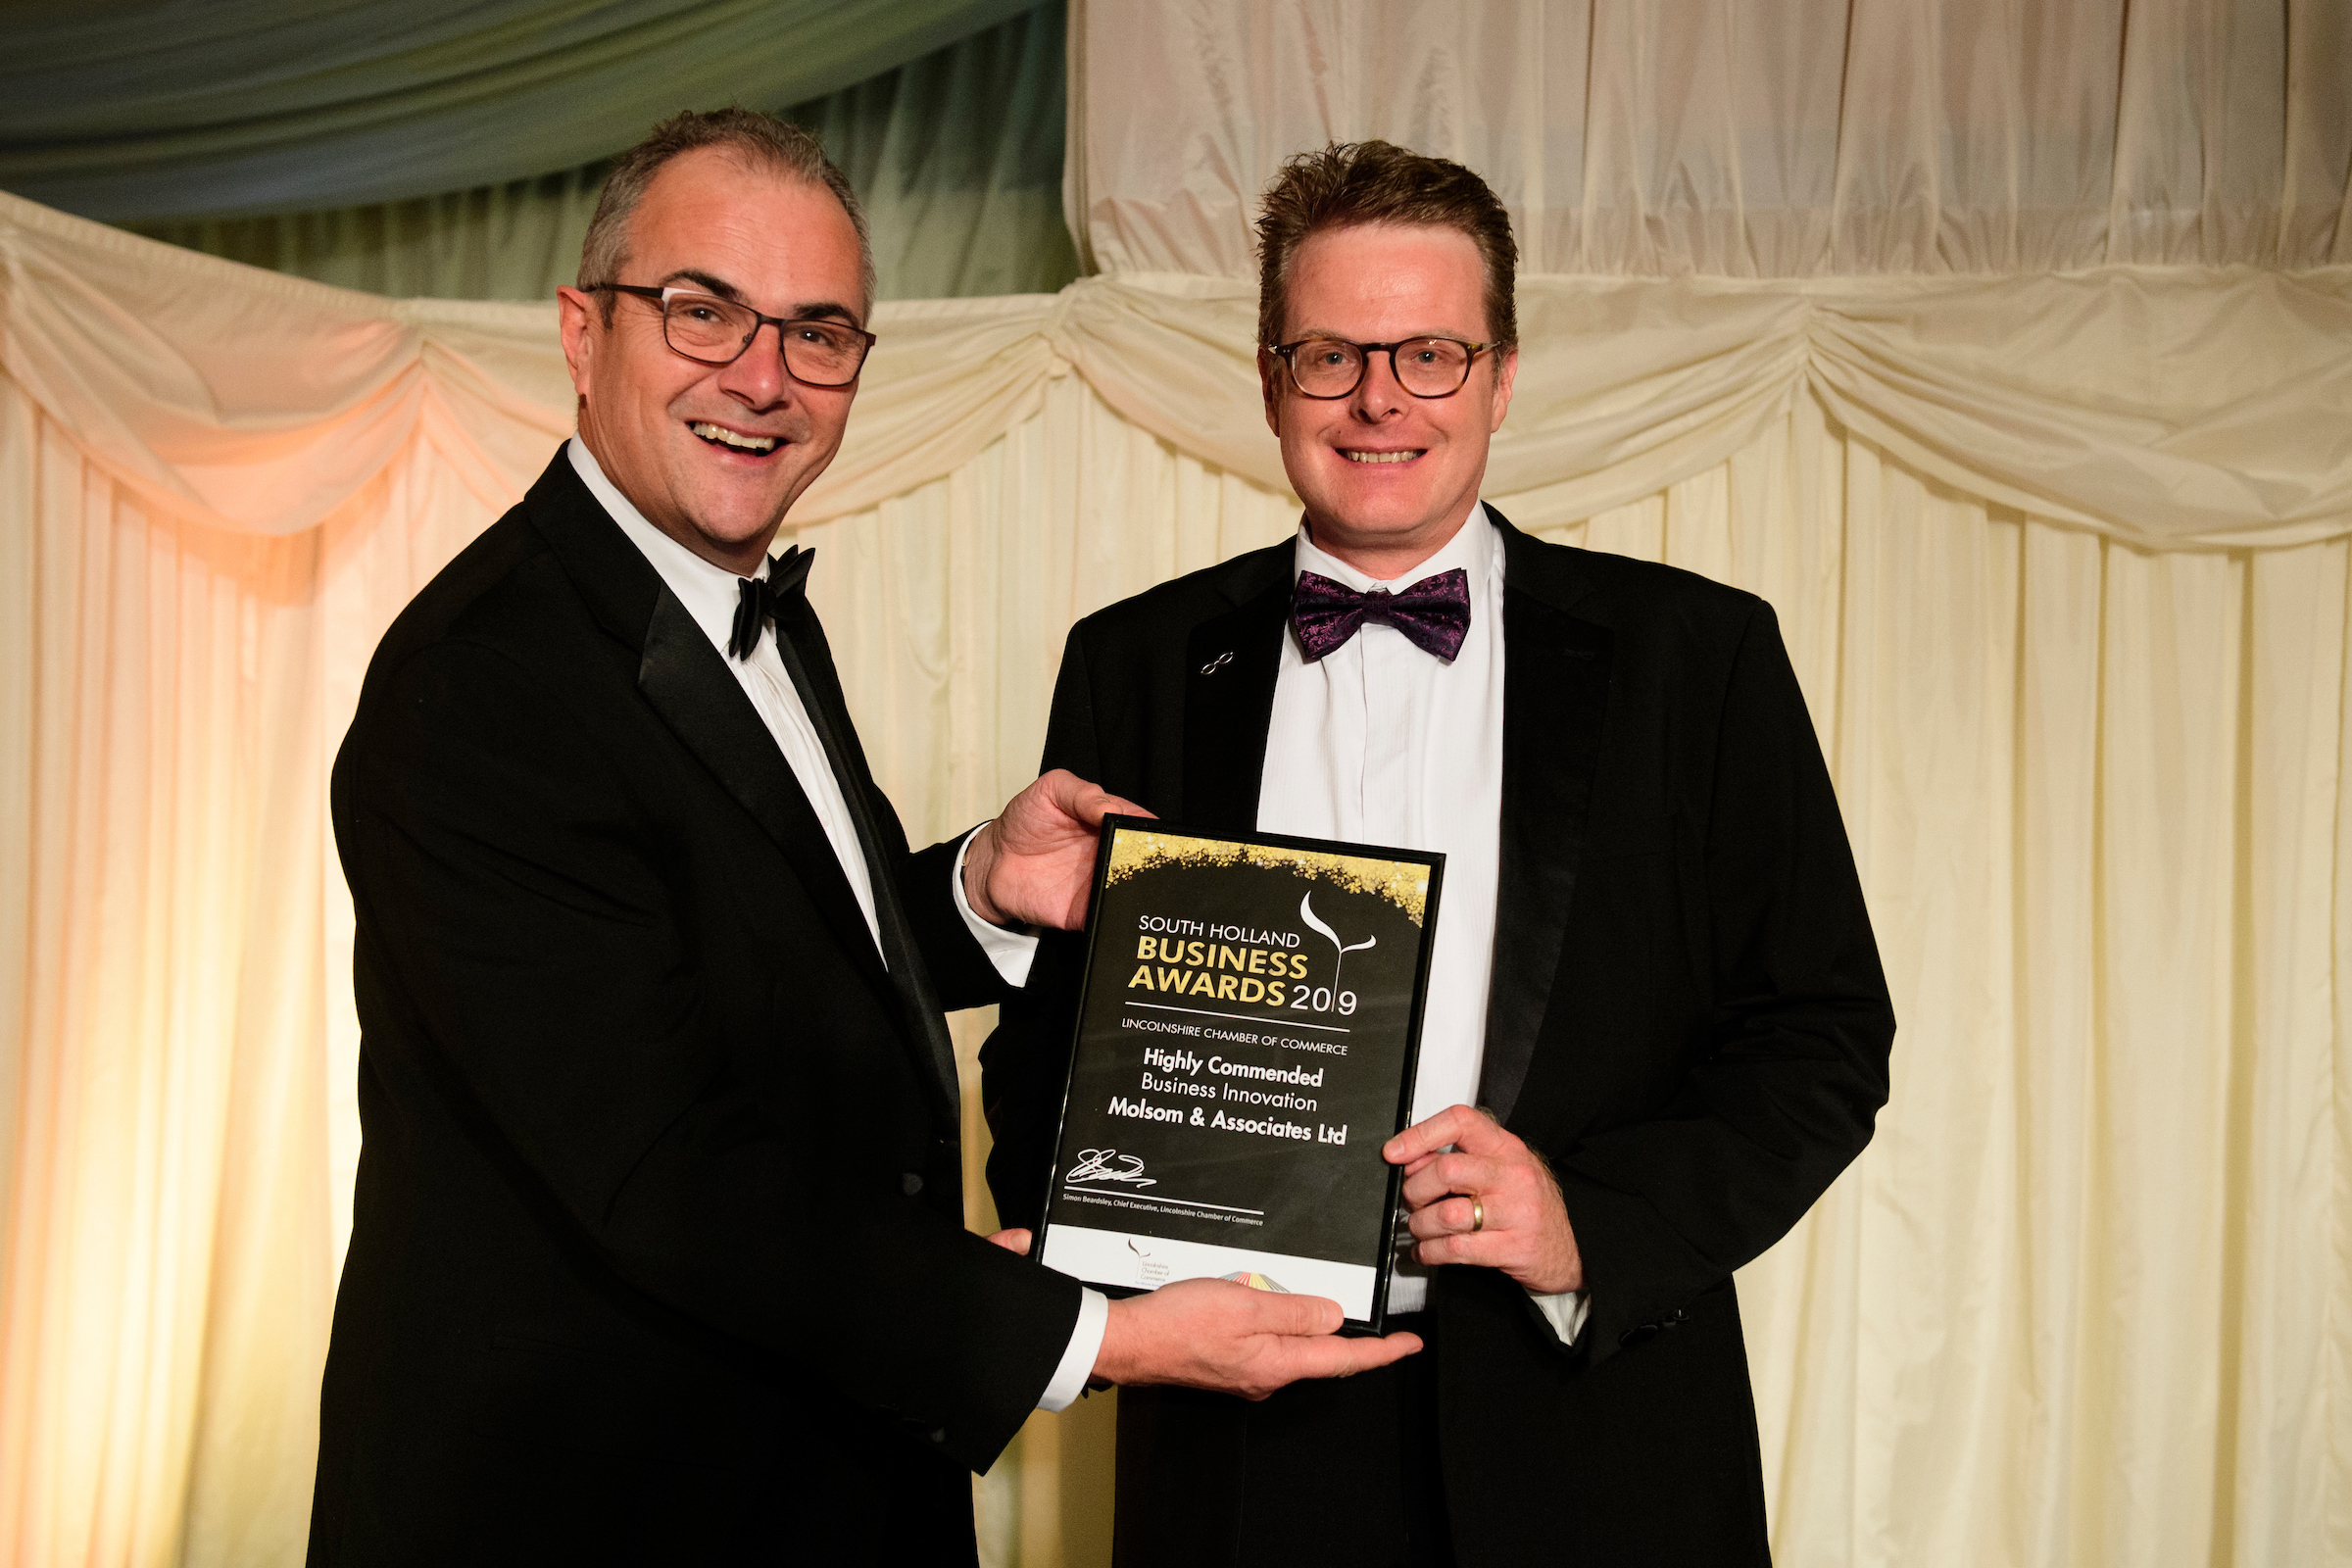 Two men in formal evening wear holding trophies and certificates and smiling at the South Holland Business Awards 2019